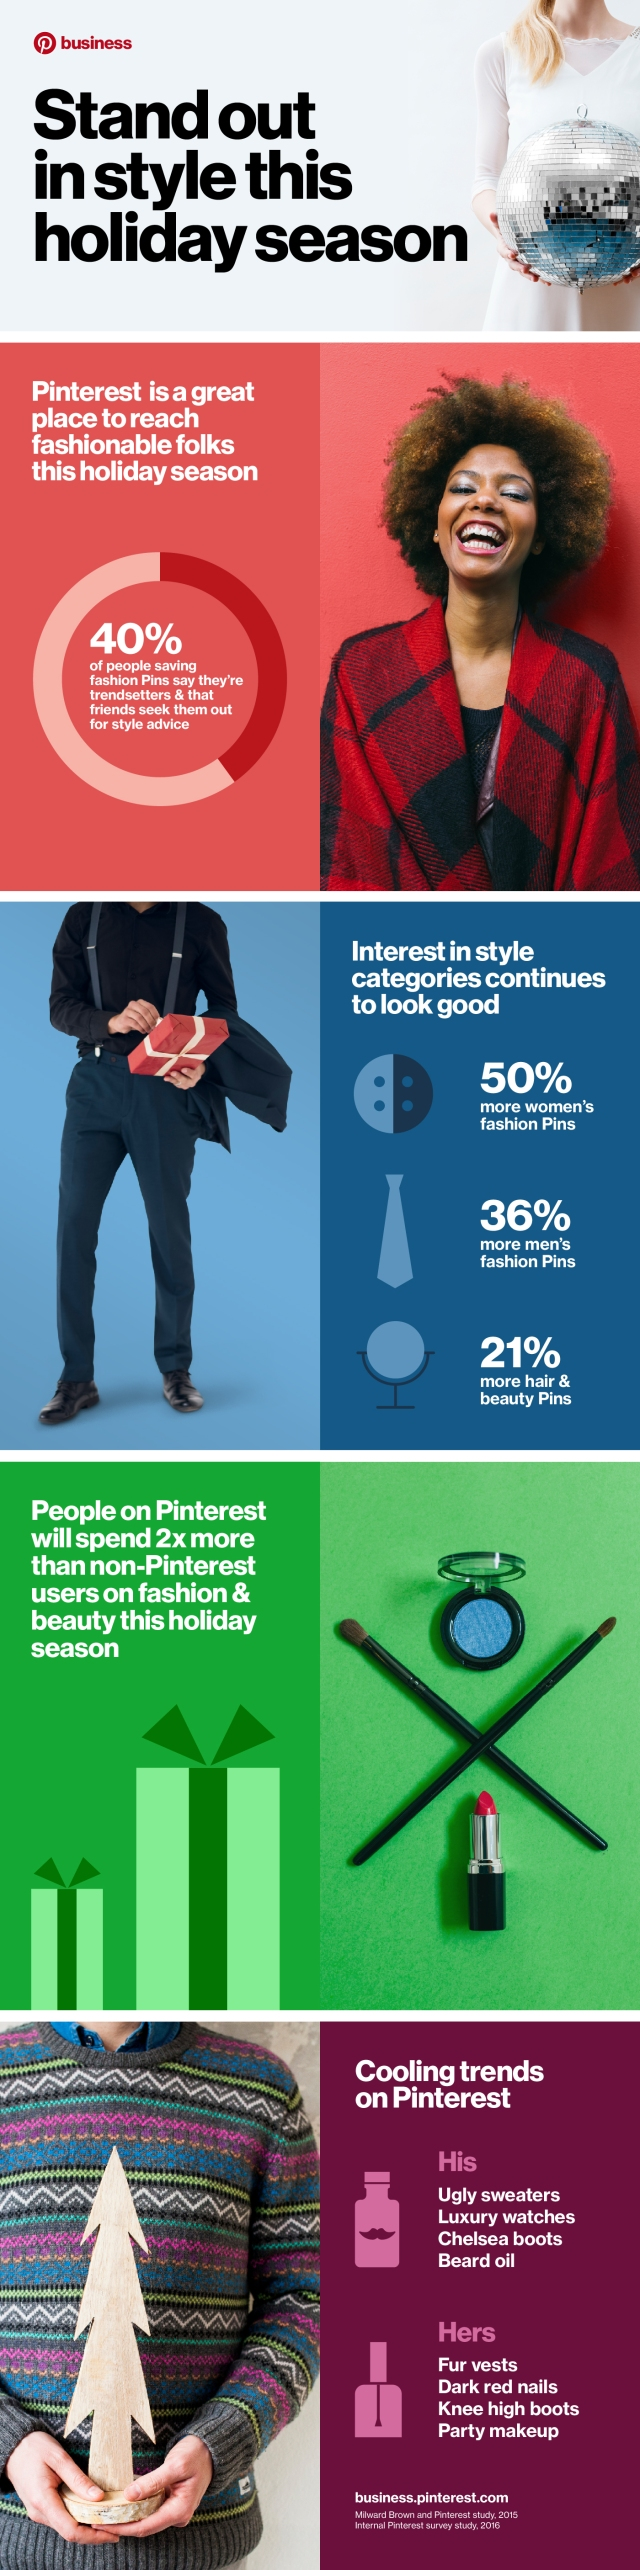 pinterest-holiday-trends-info